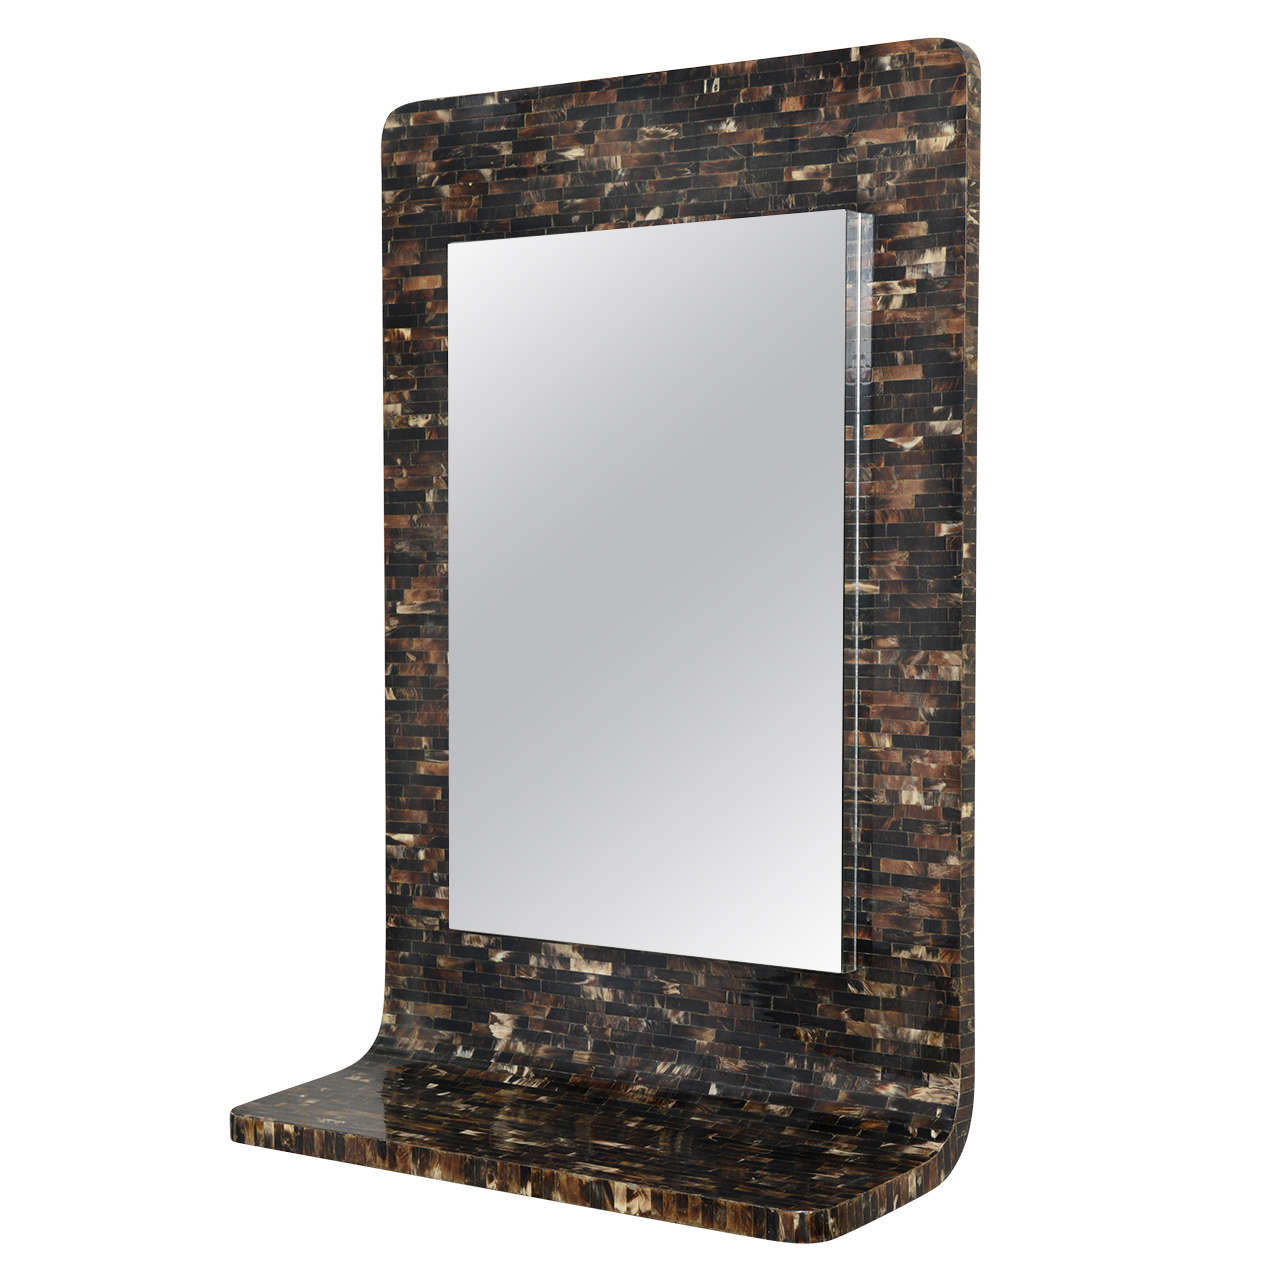 1970s Tessellated Horn Wall Mounted Console and Mirror